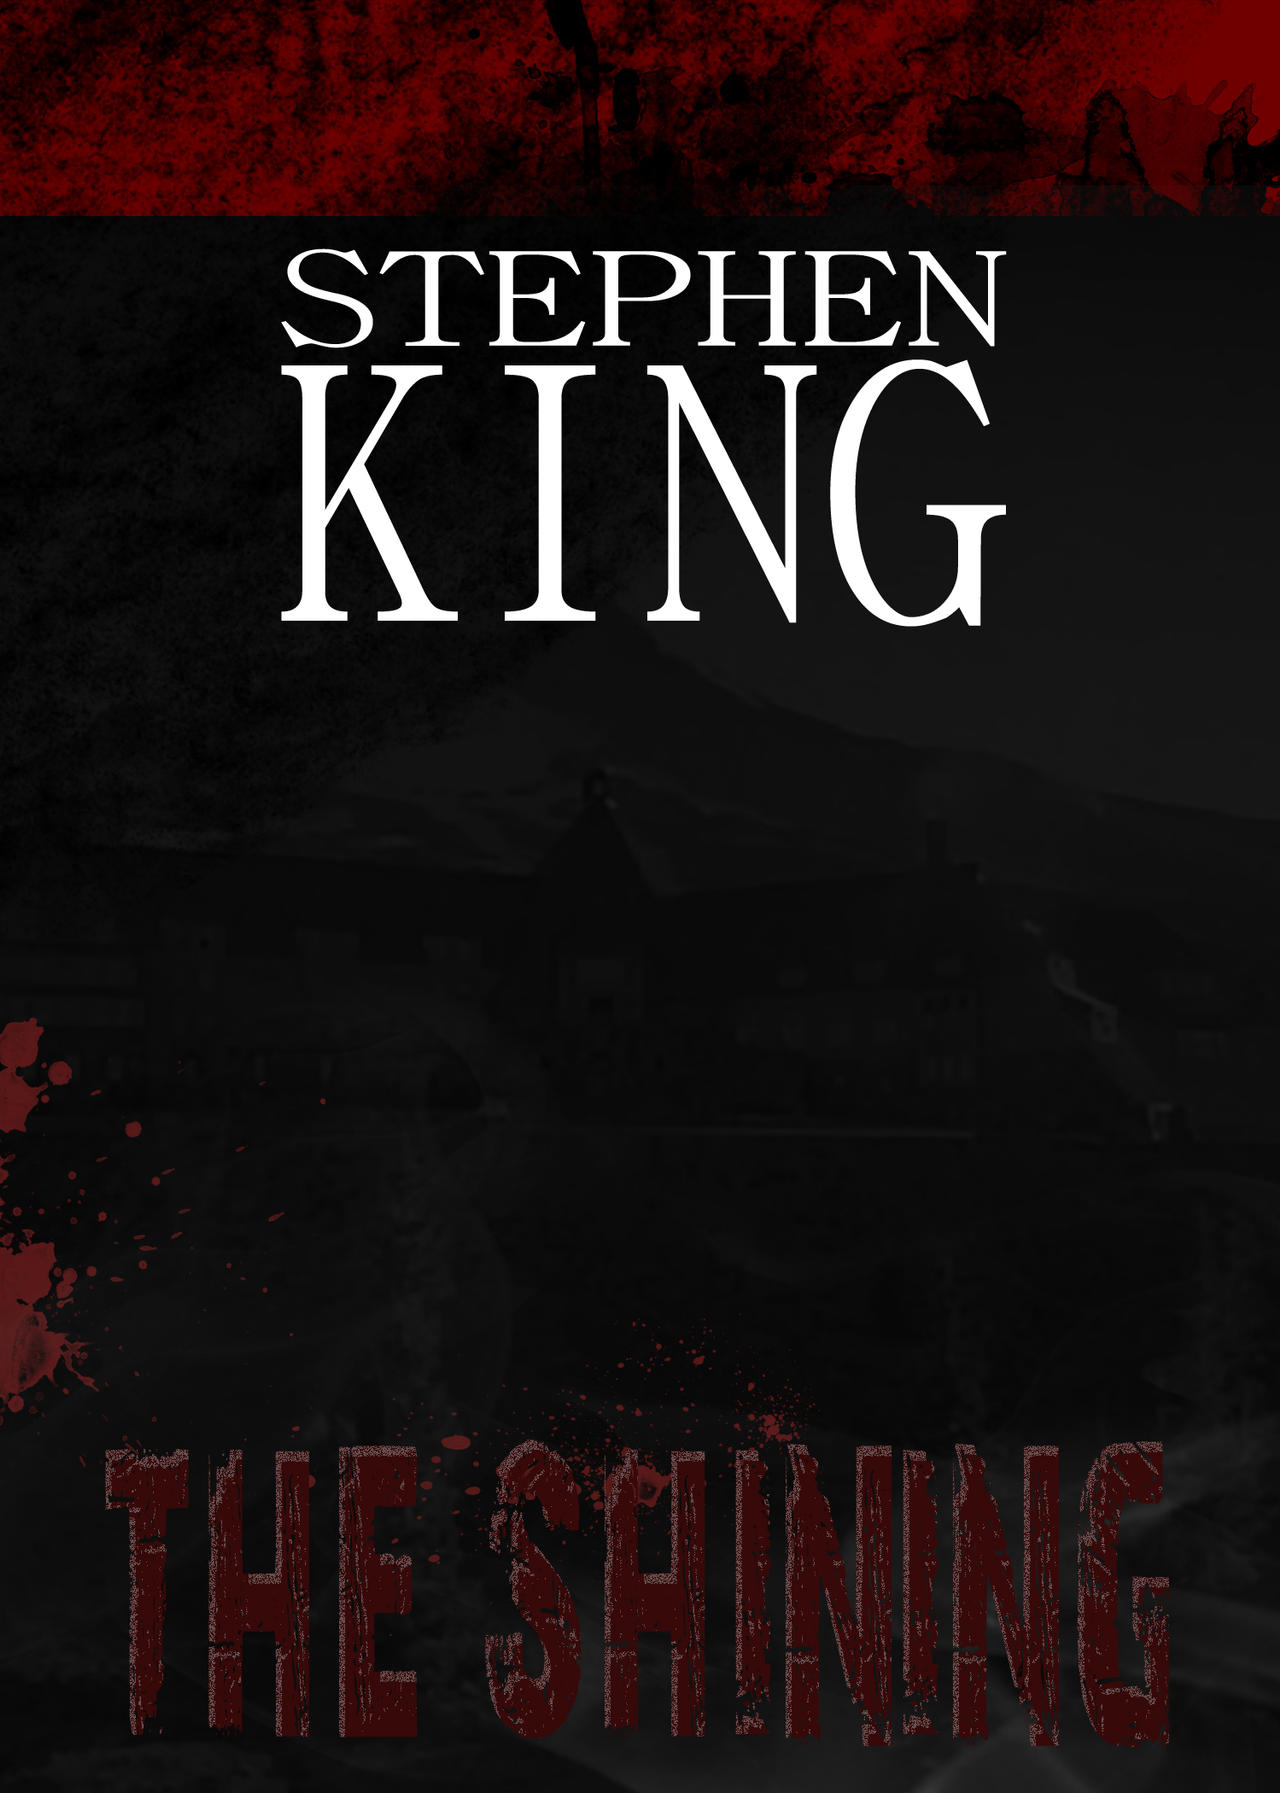 The Shining (book cover project) by Sedrice on DeviantArt